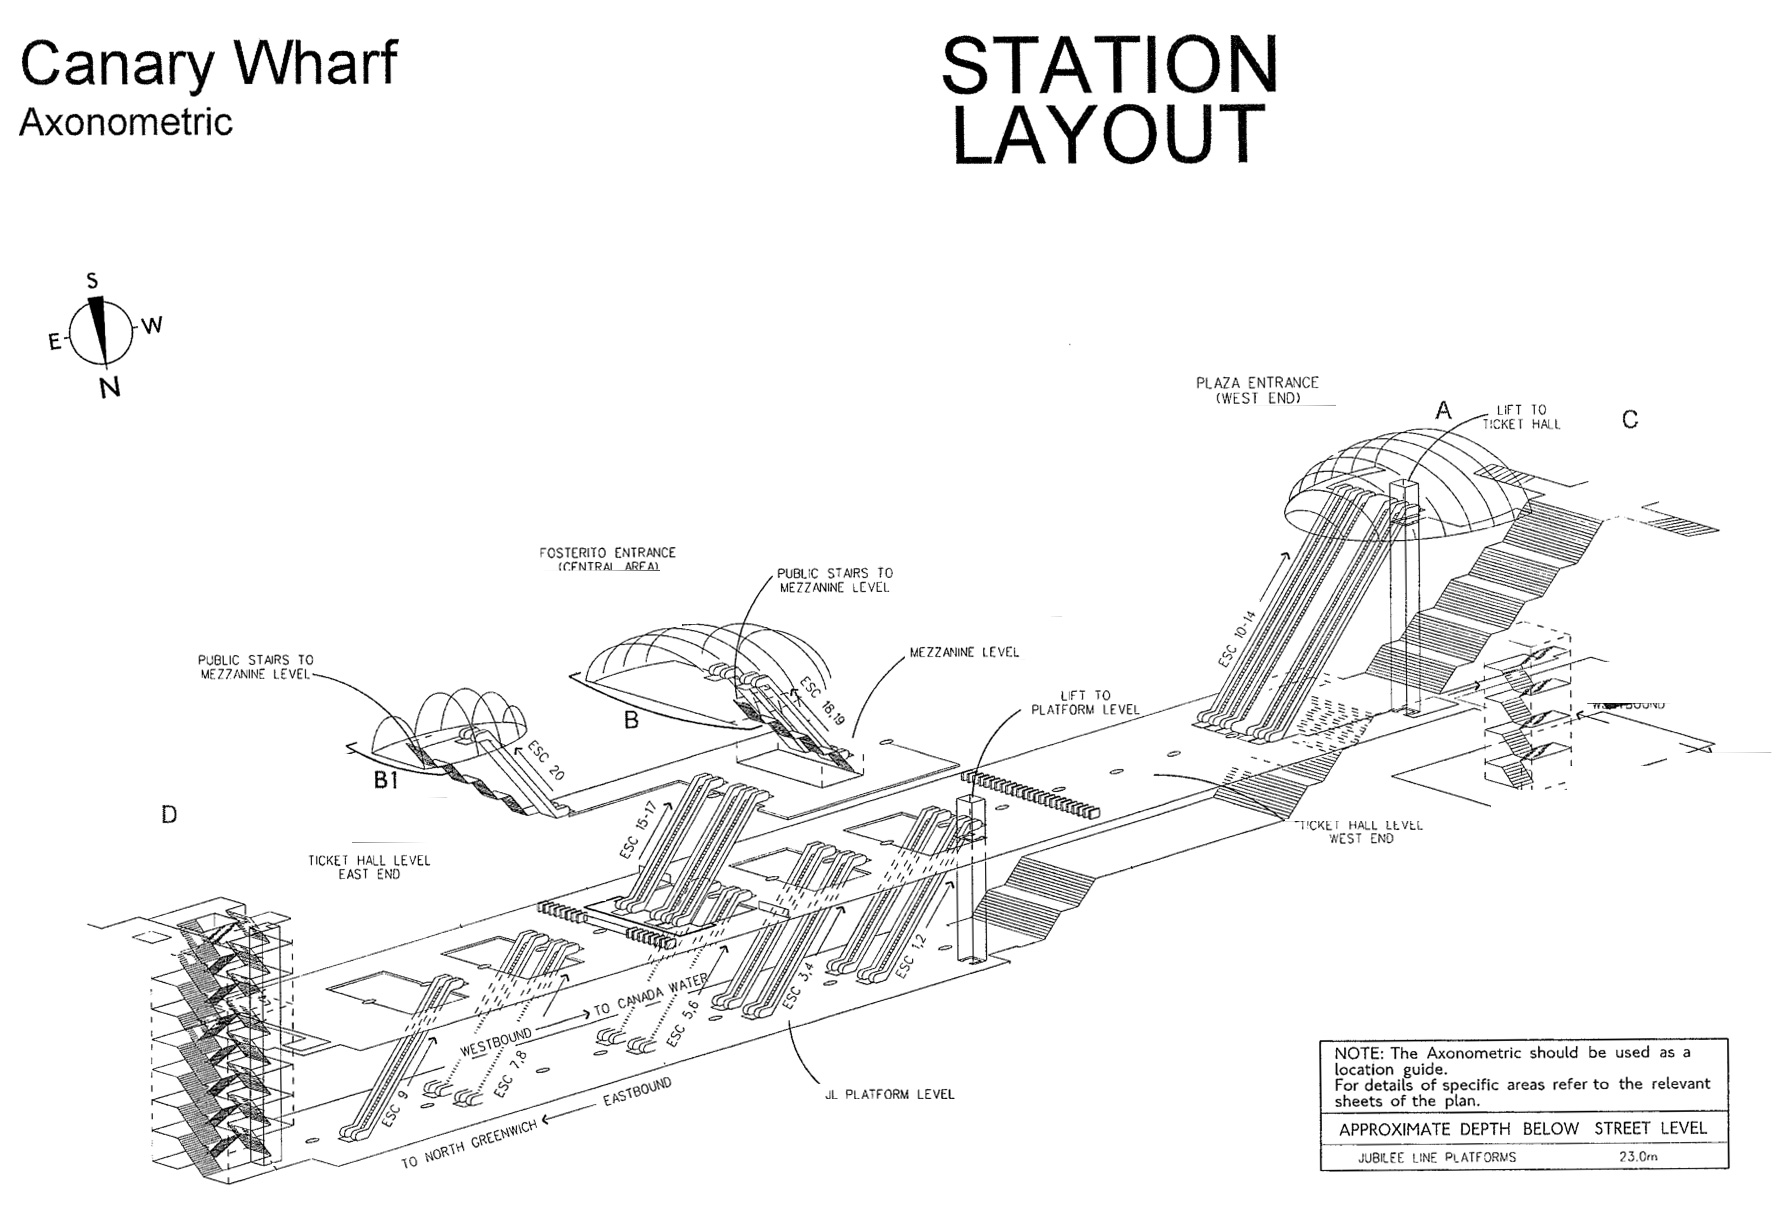 diagramme-3d-station-metro-londres-canary-wharf-03